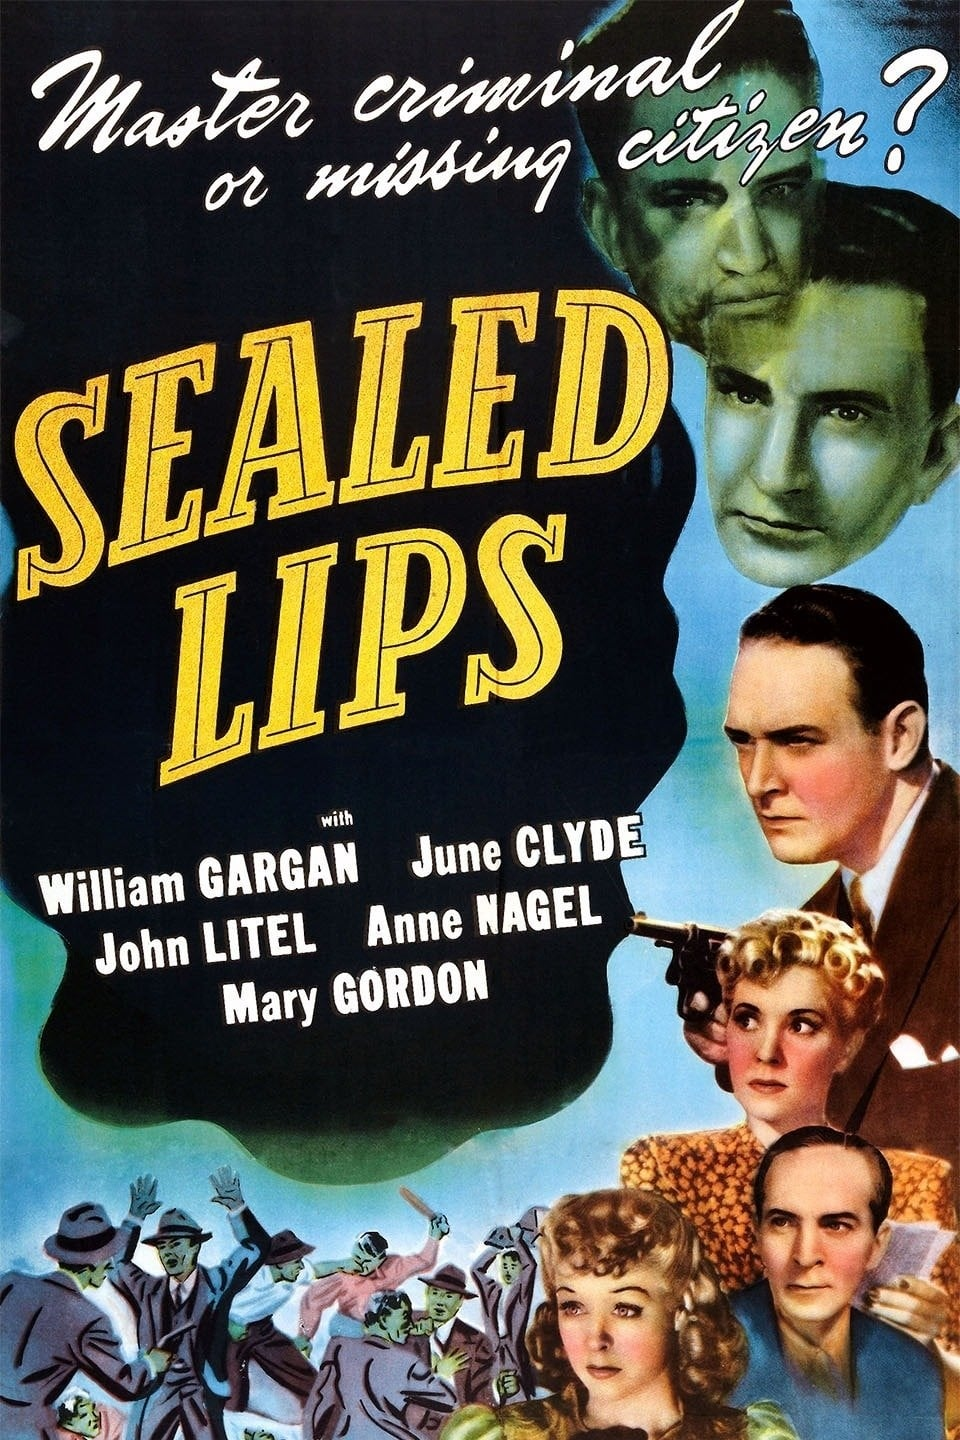 Sealed Lips (1942)